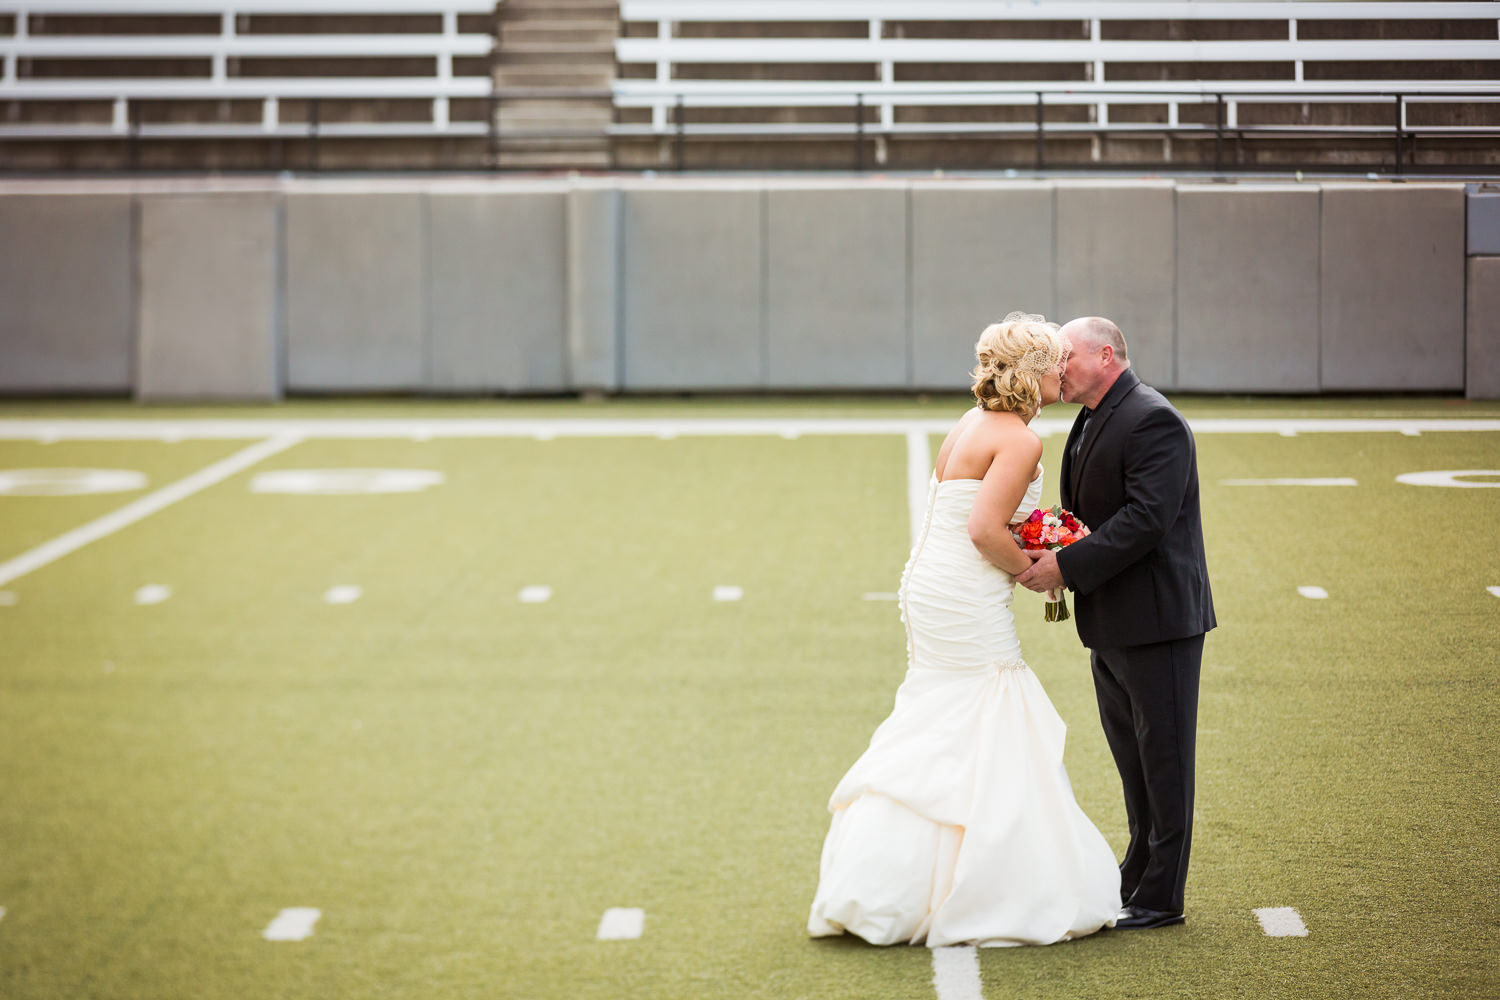 missoula-museum-mountain-flying-wedding-couple-kissing-first-look.jpg